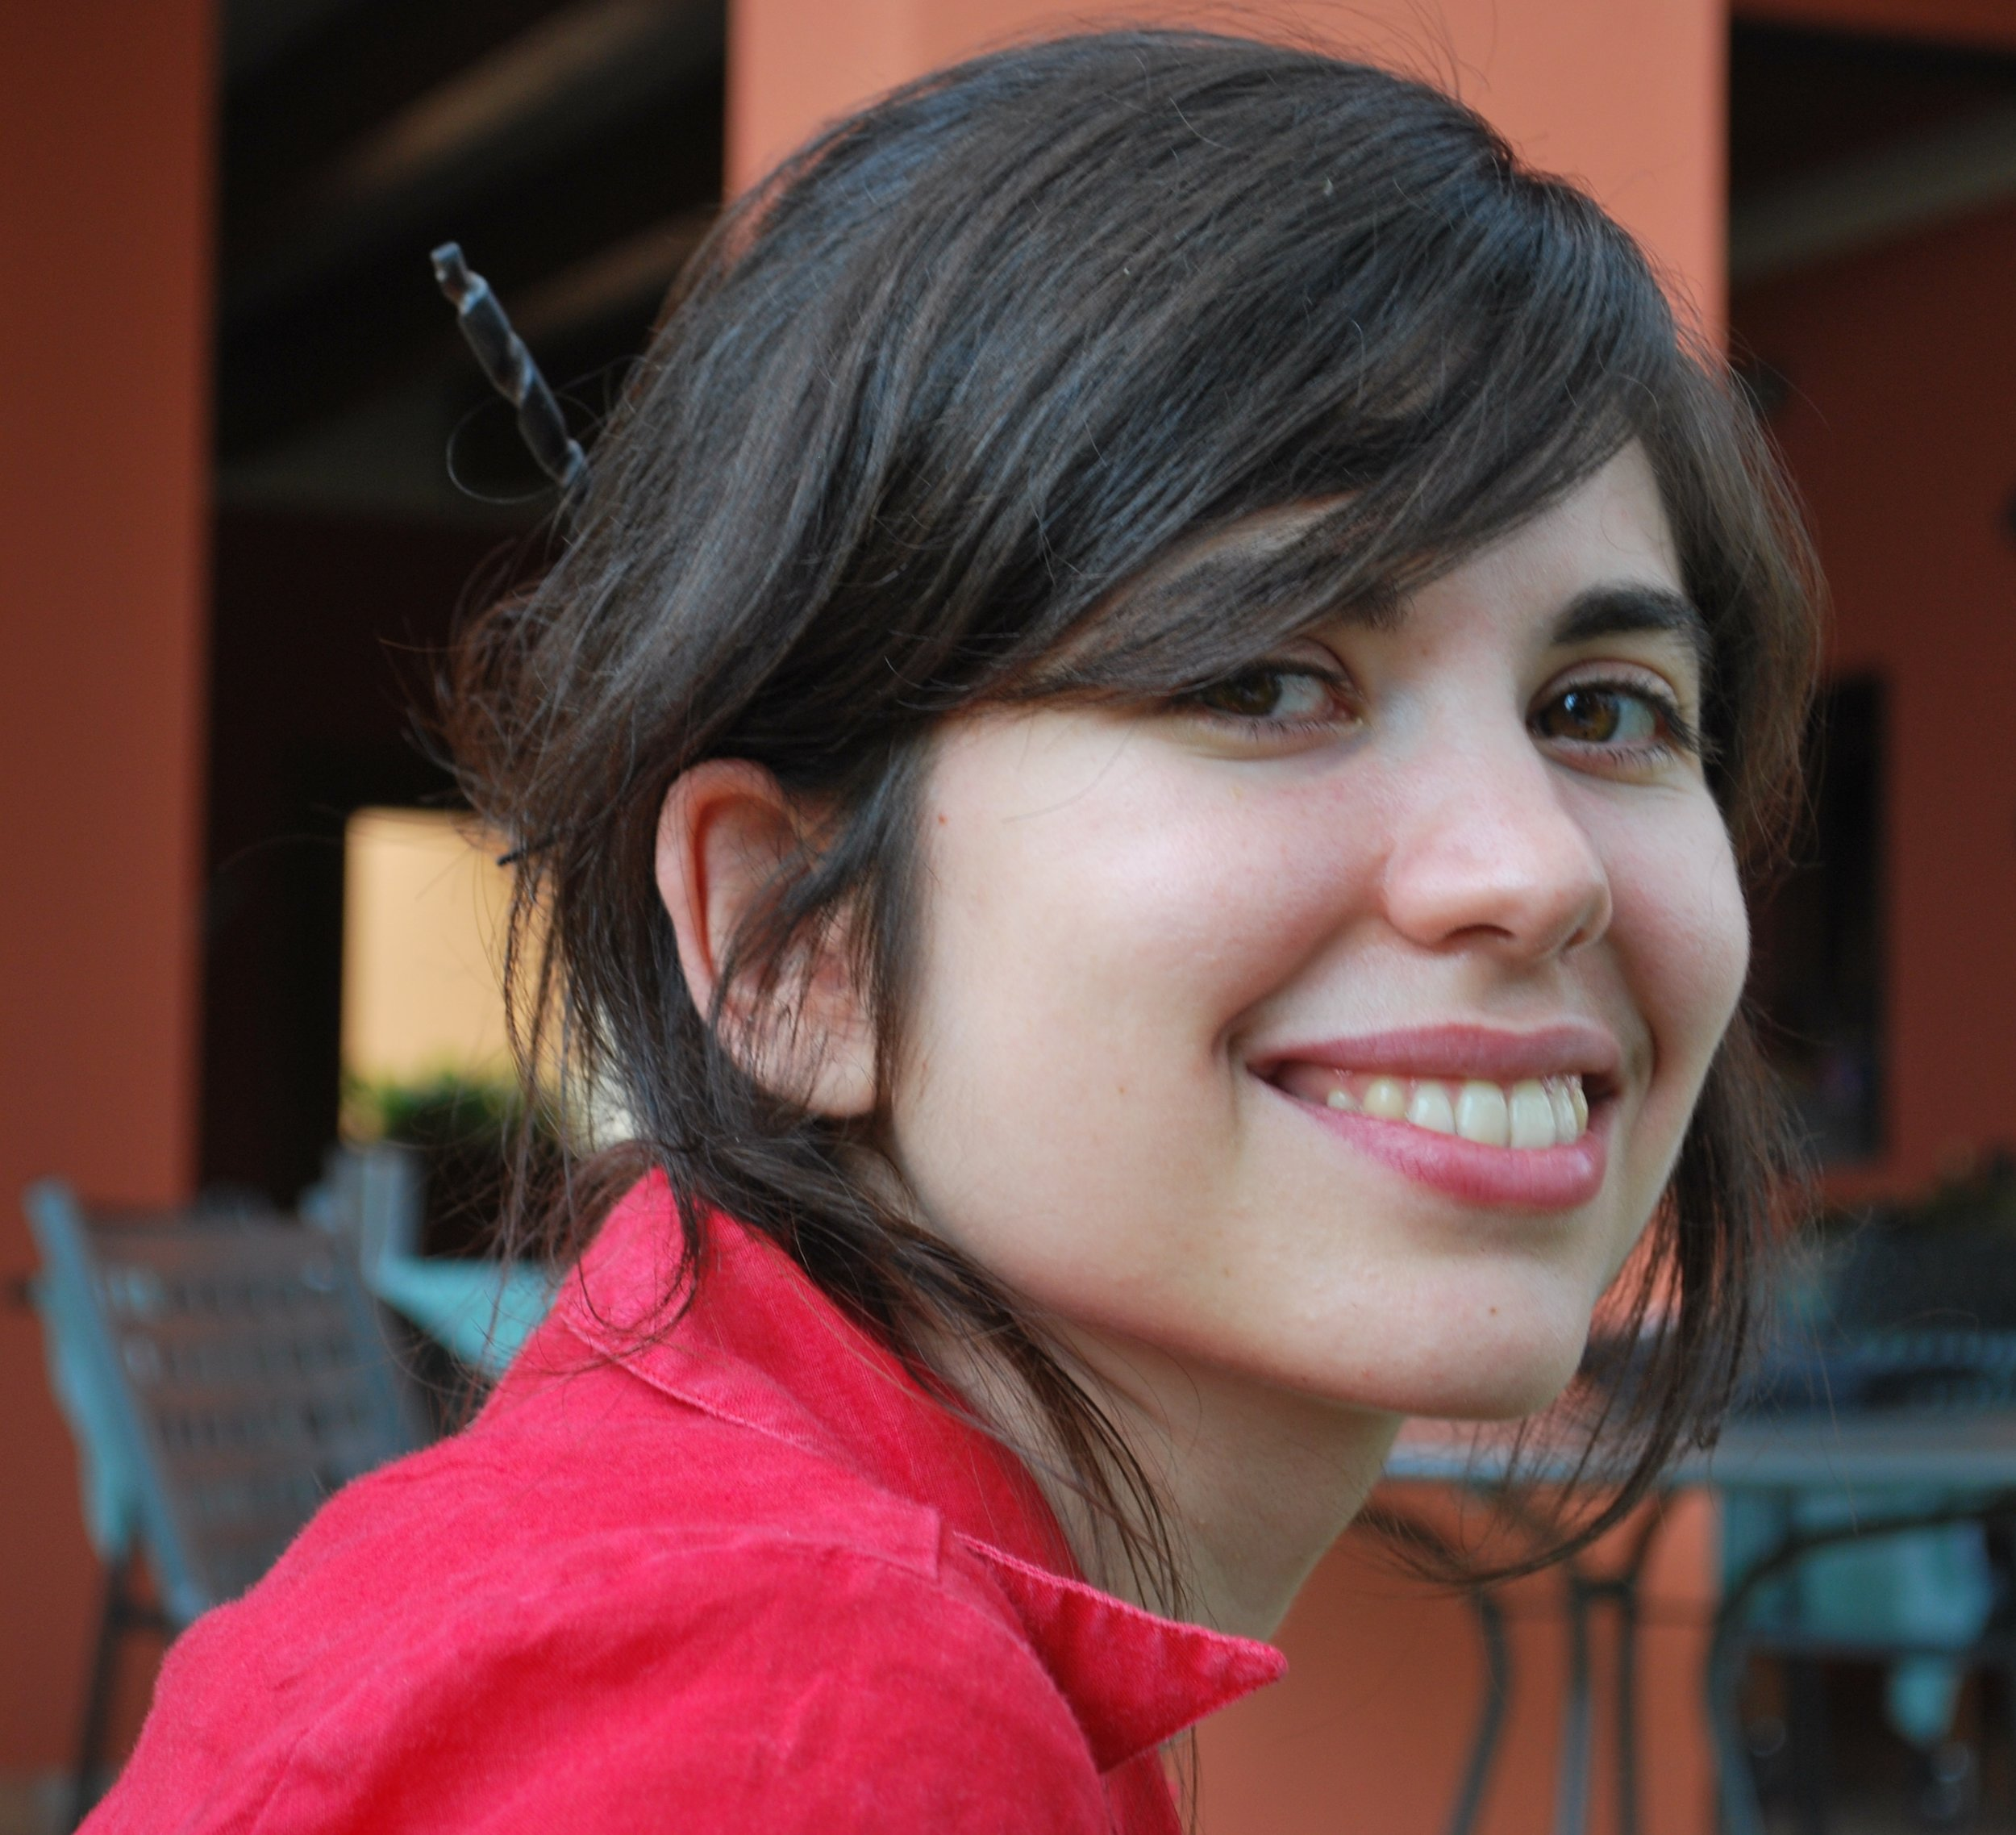 Margherita Arcangeli is a post-doctoral researcher at the École des Hautes Études en Sciences Sociales and the Institut Jean Nicod. Her main areas of research are philosophy of mind, philosophy of science, aesthetics and epistemology.